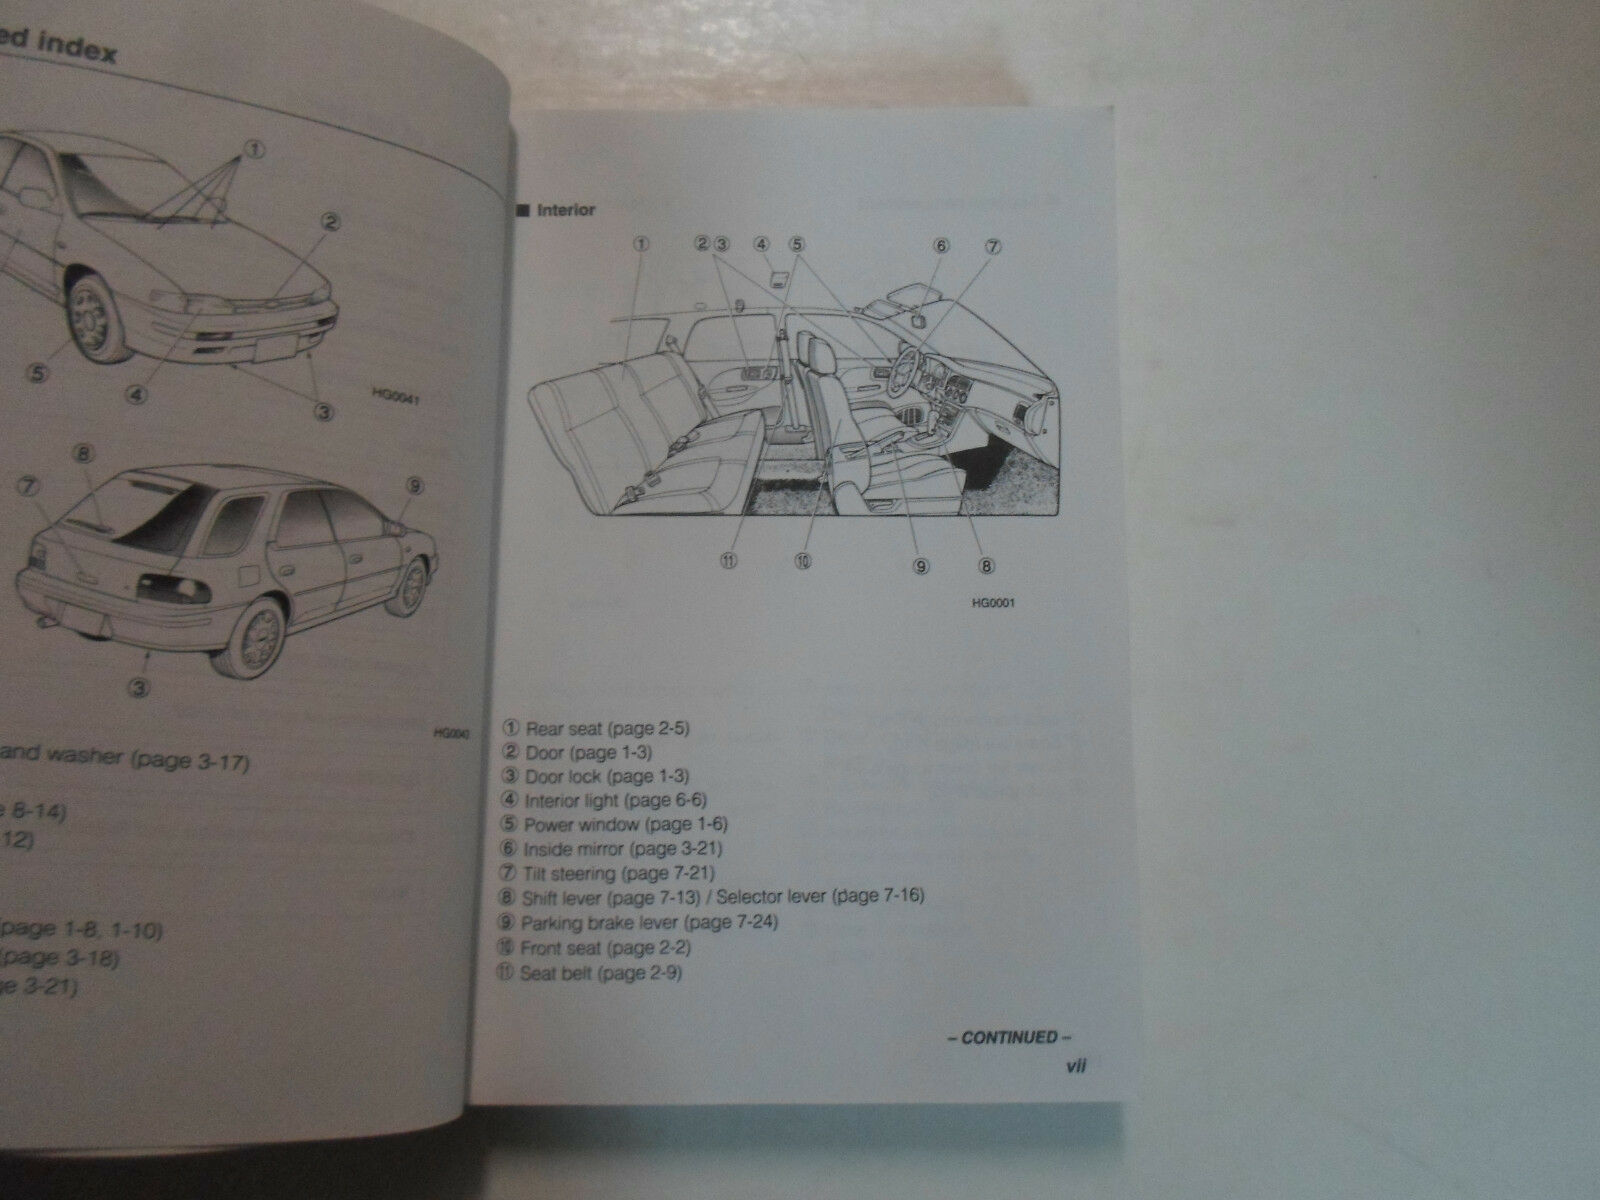 1996 Subaru Impreza Owners Manual WATER DAMAGED STAINED FACTORY FEO BOOK 96 DEAL